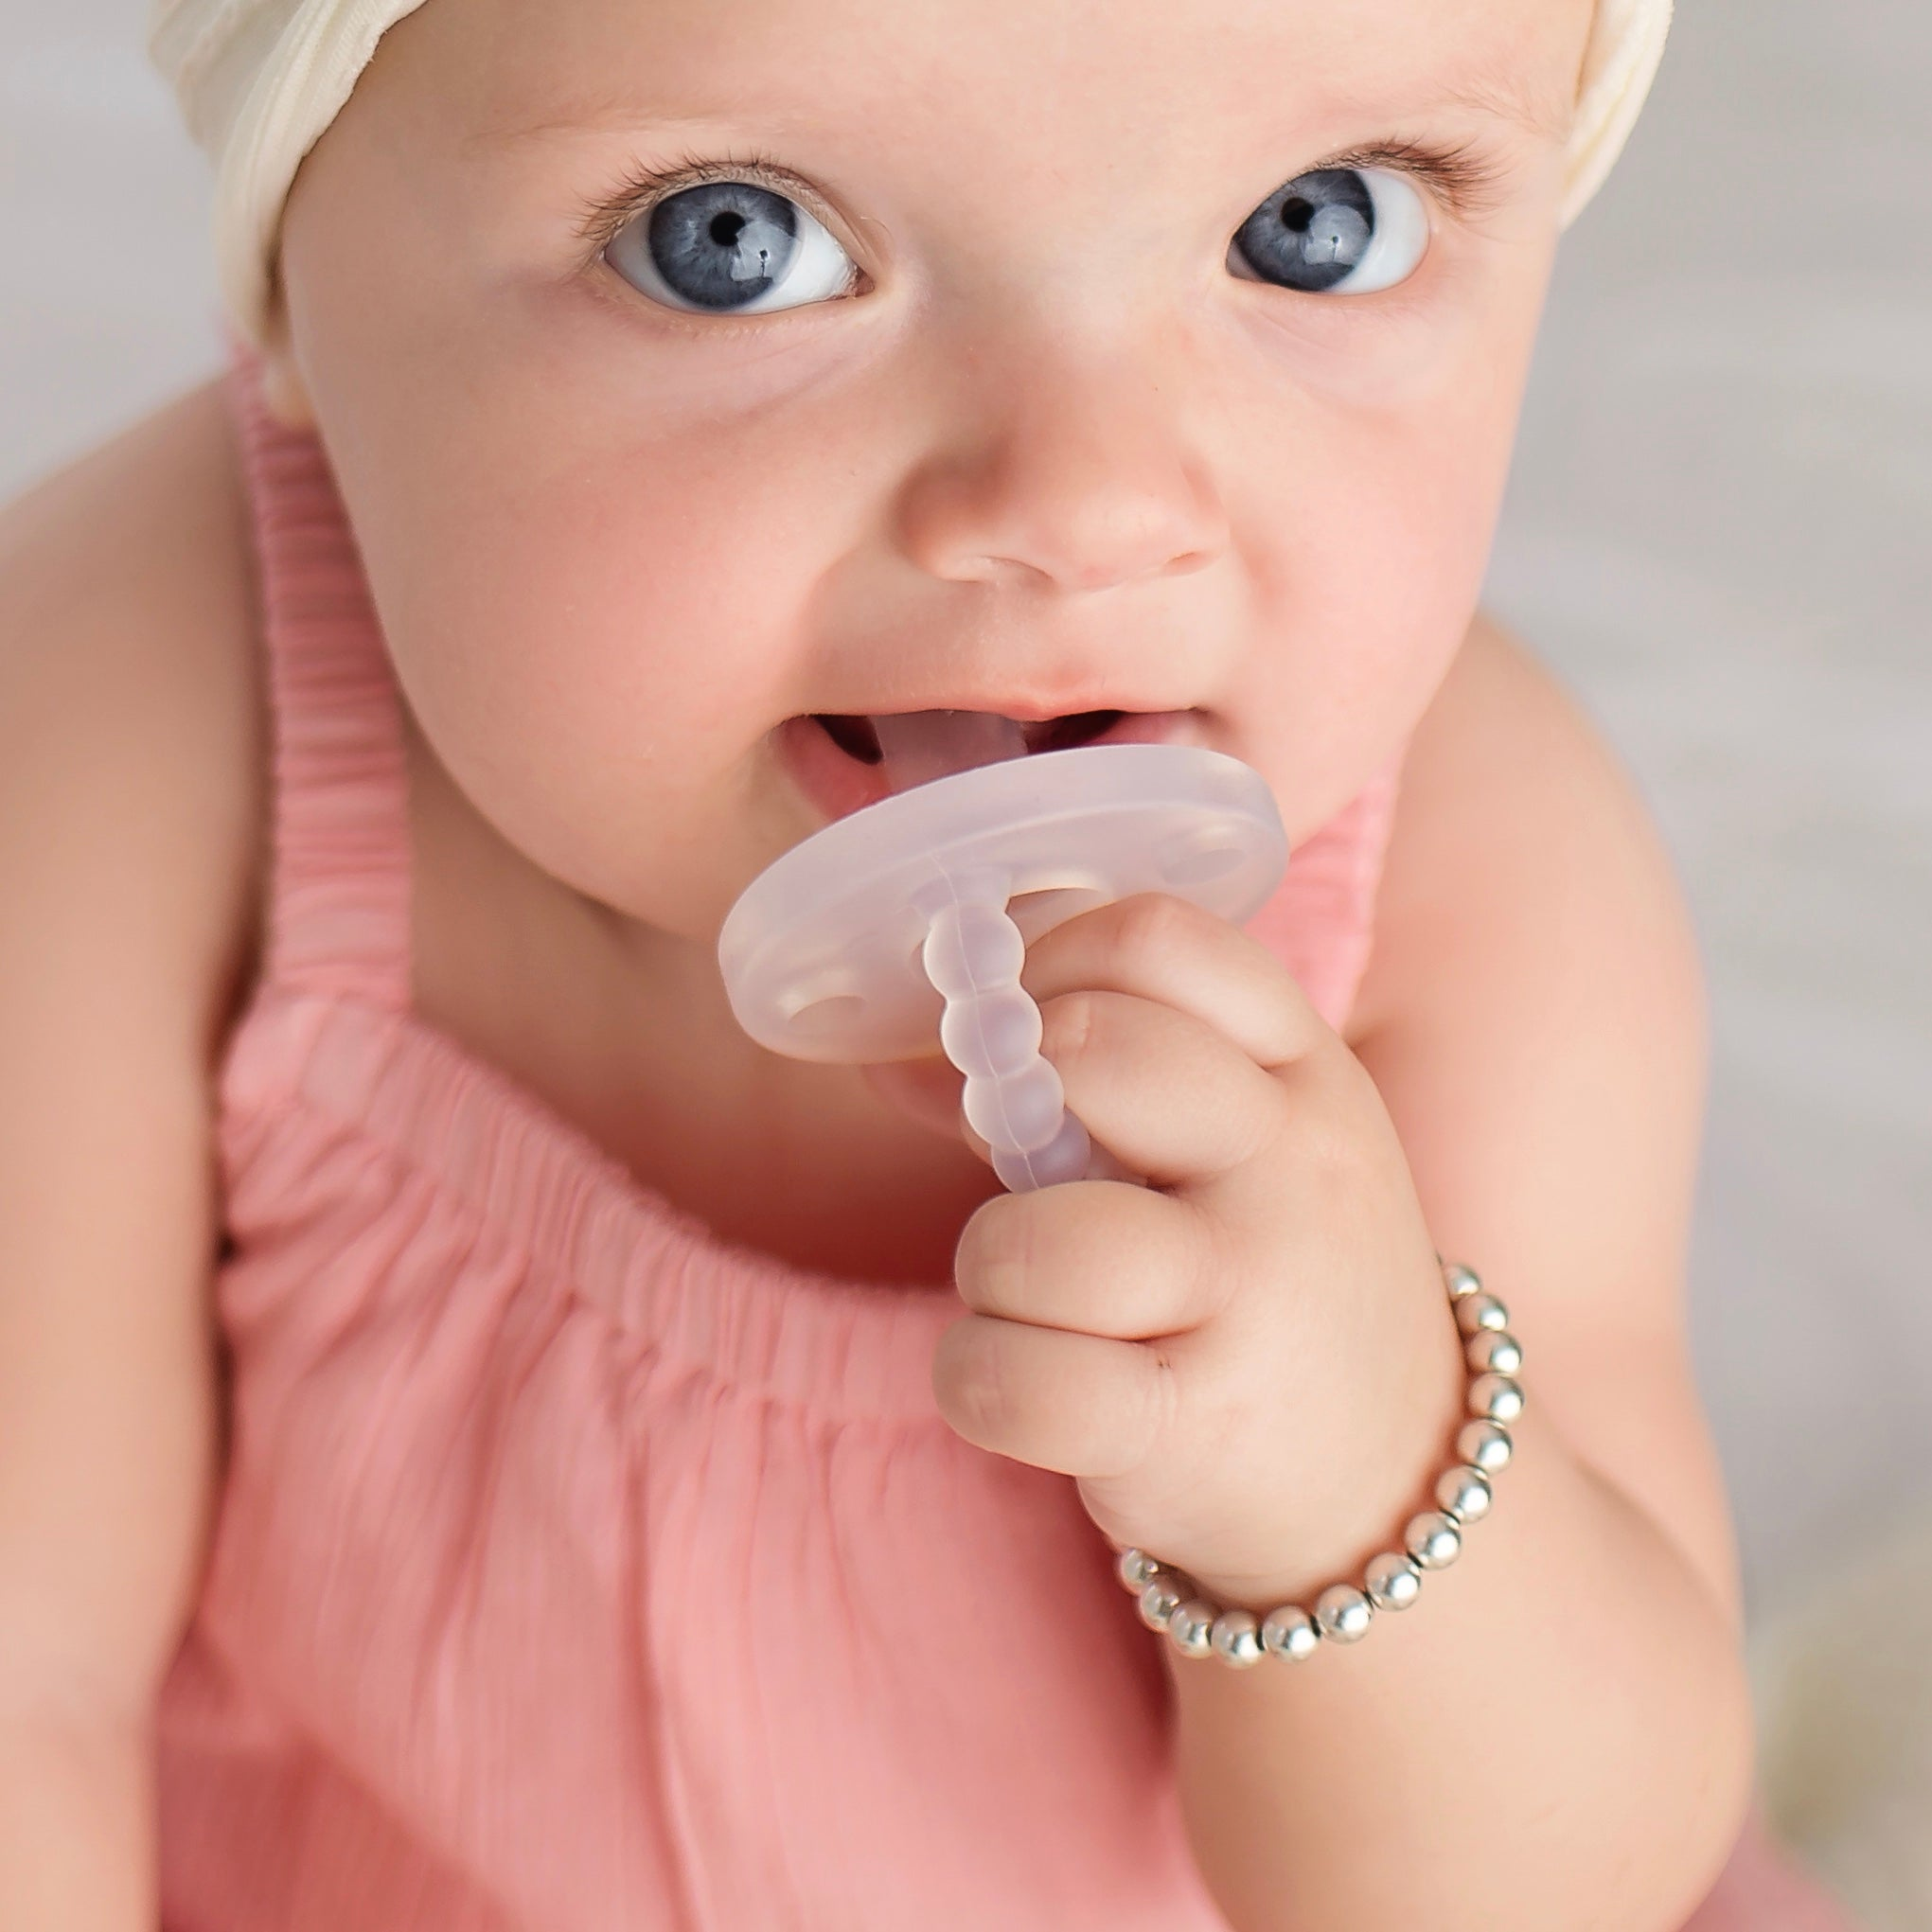 first cutie pat pacifier